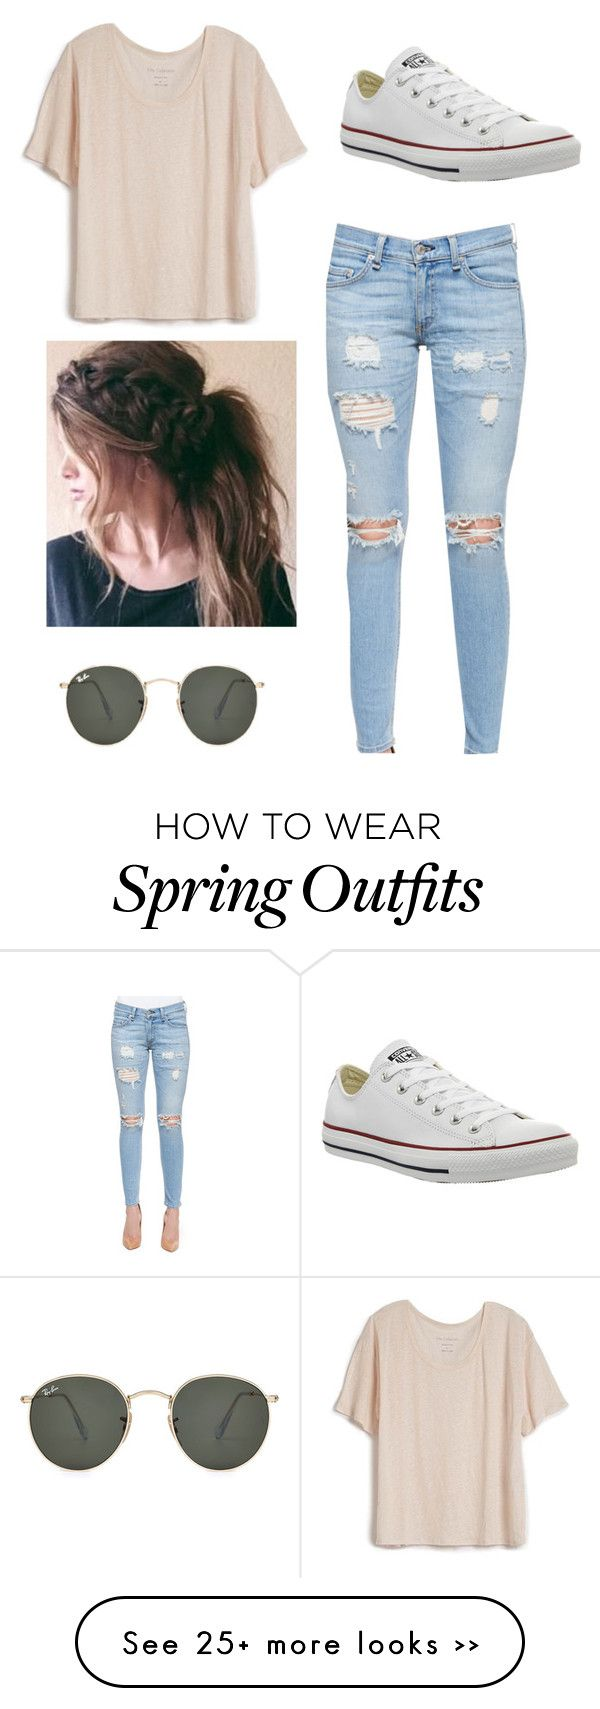 """Spring outfit <3"" by jessie-taylor-i on Polyvore"